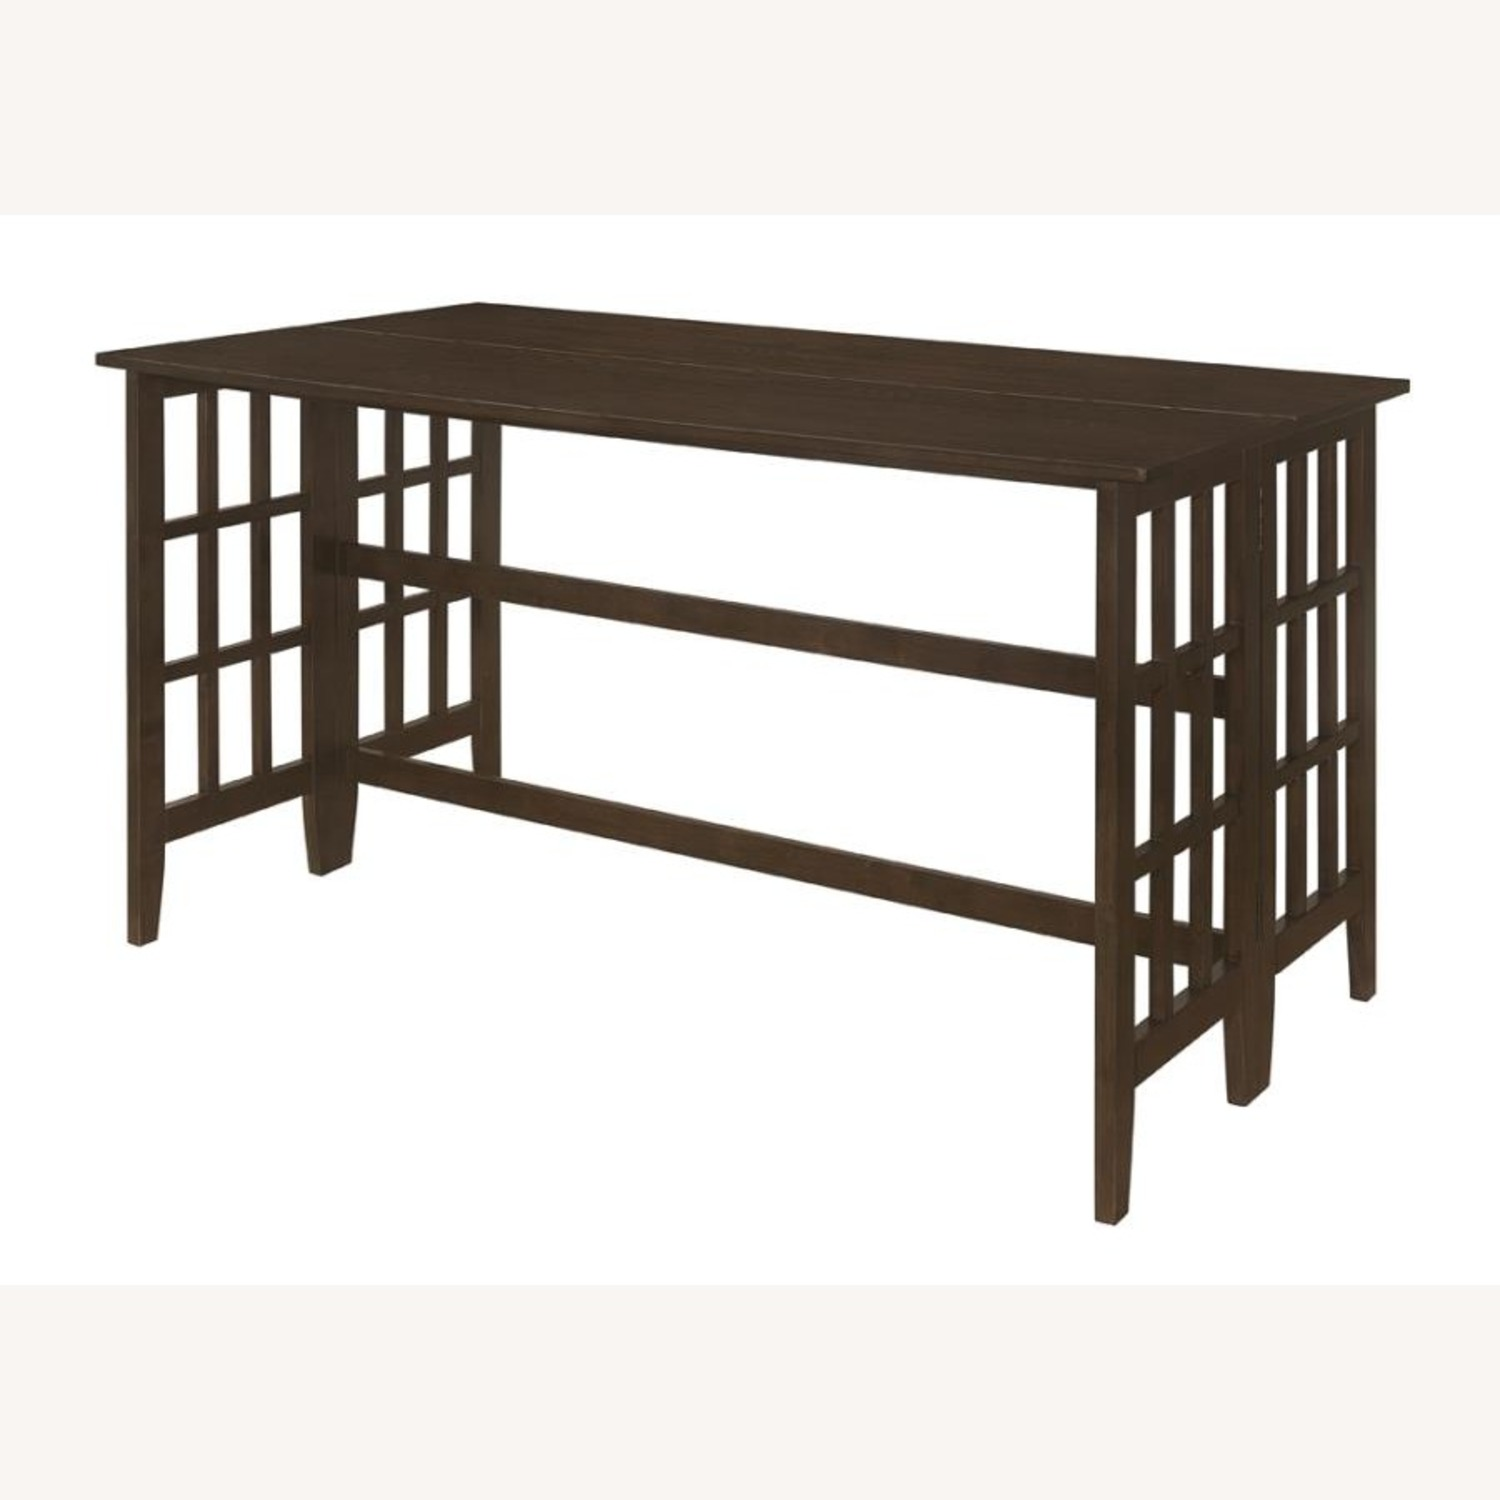 Counter Table In Brown W/ Table Top Drop Down - image-0